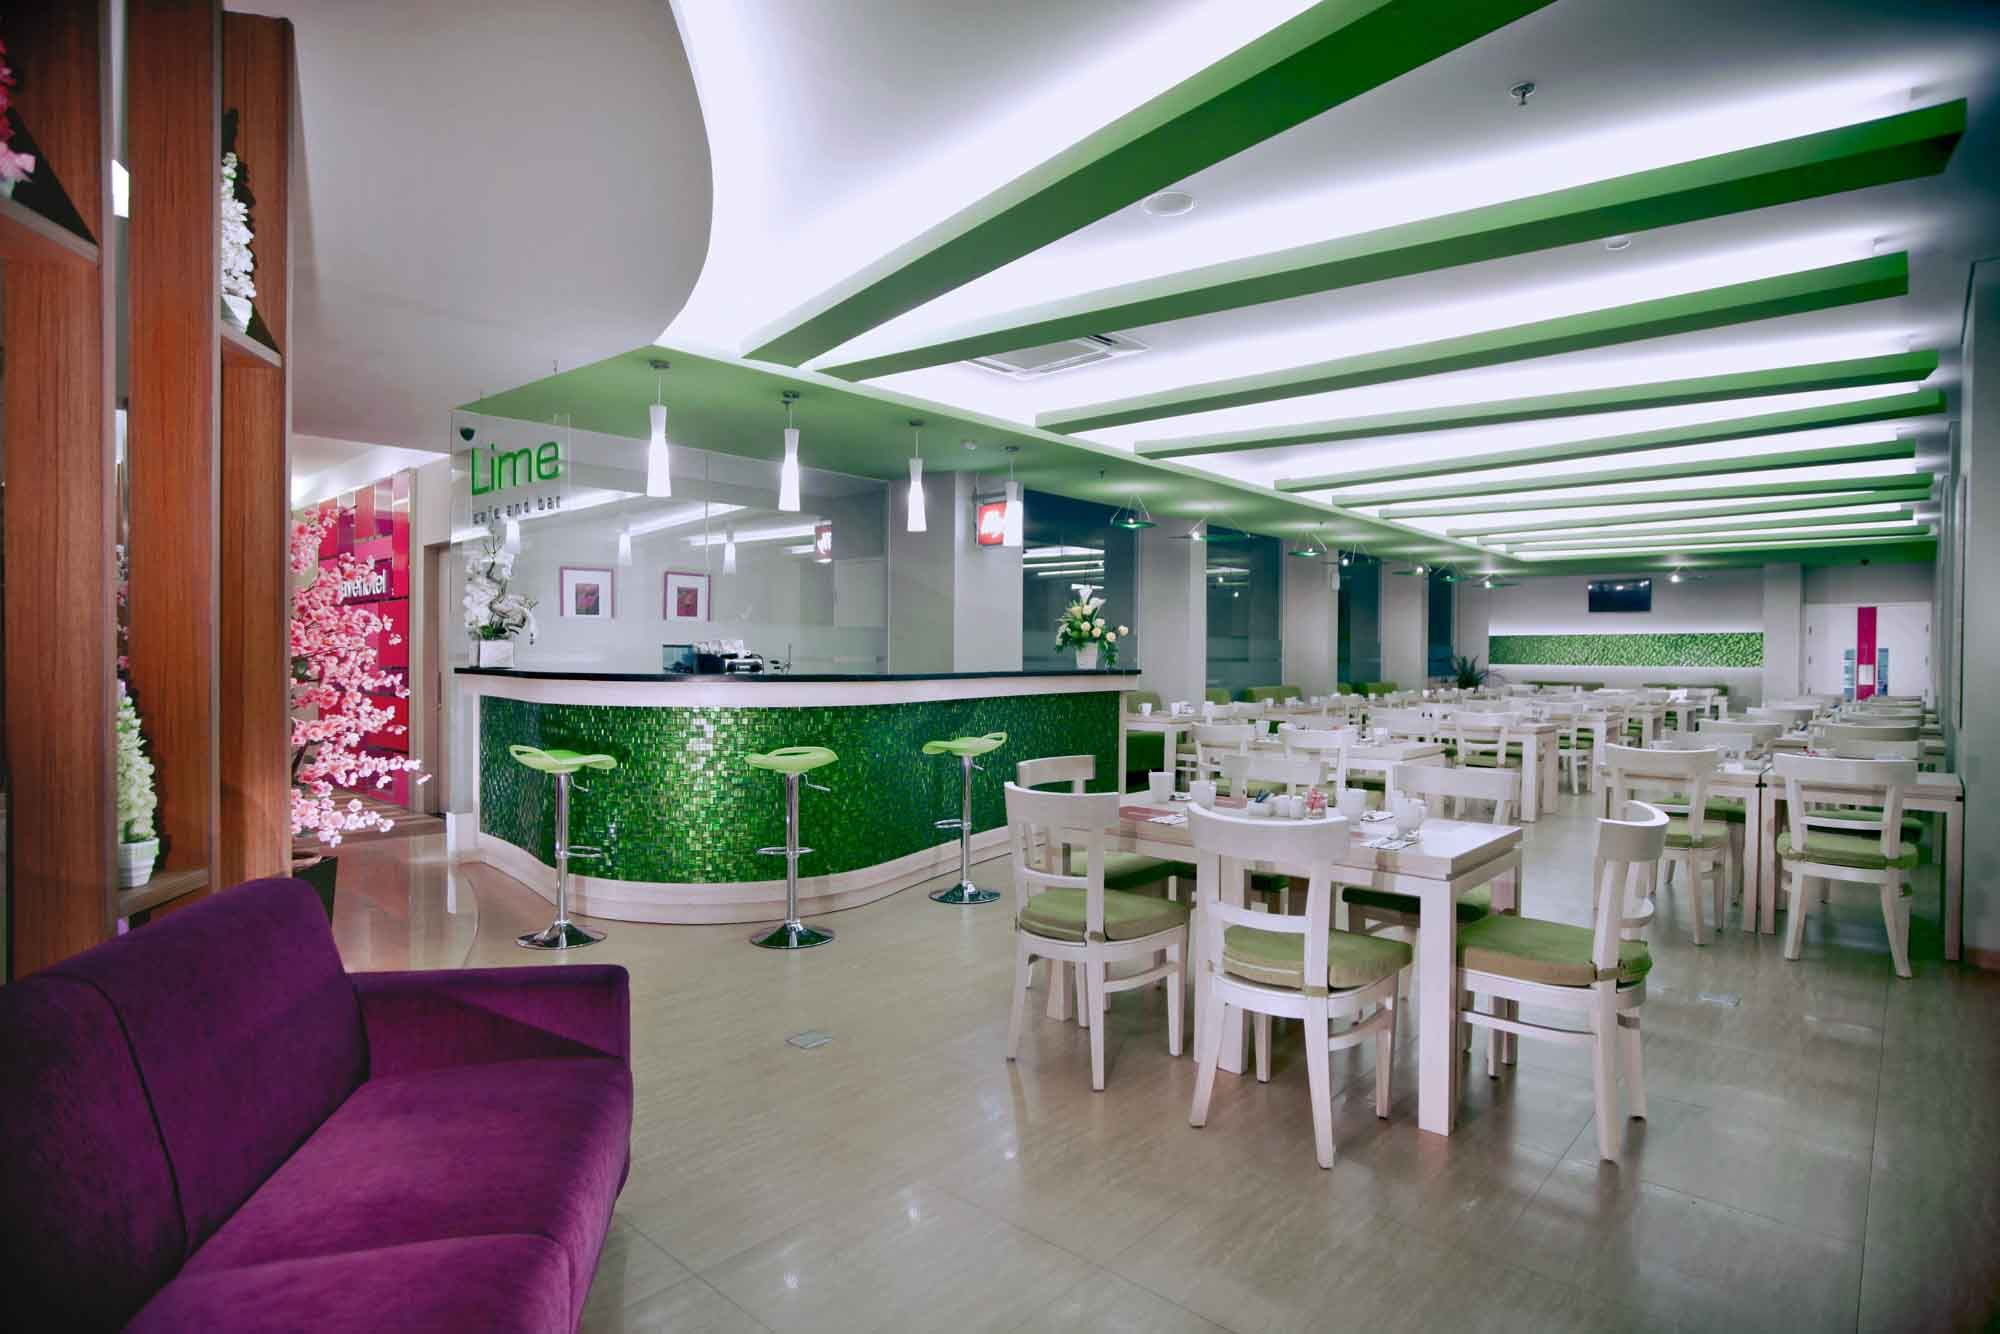 Lime Cafe & Restaurant